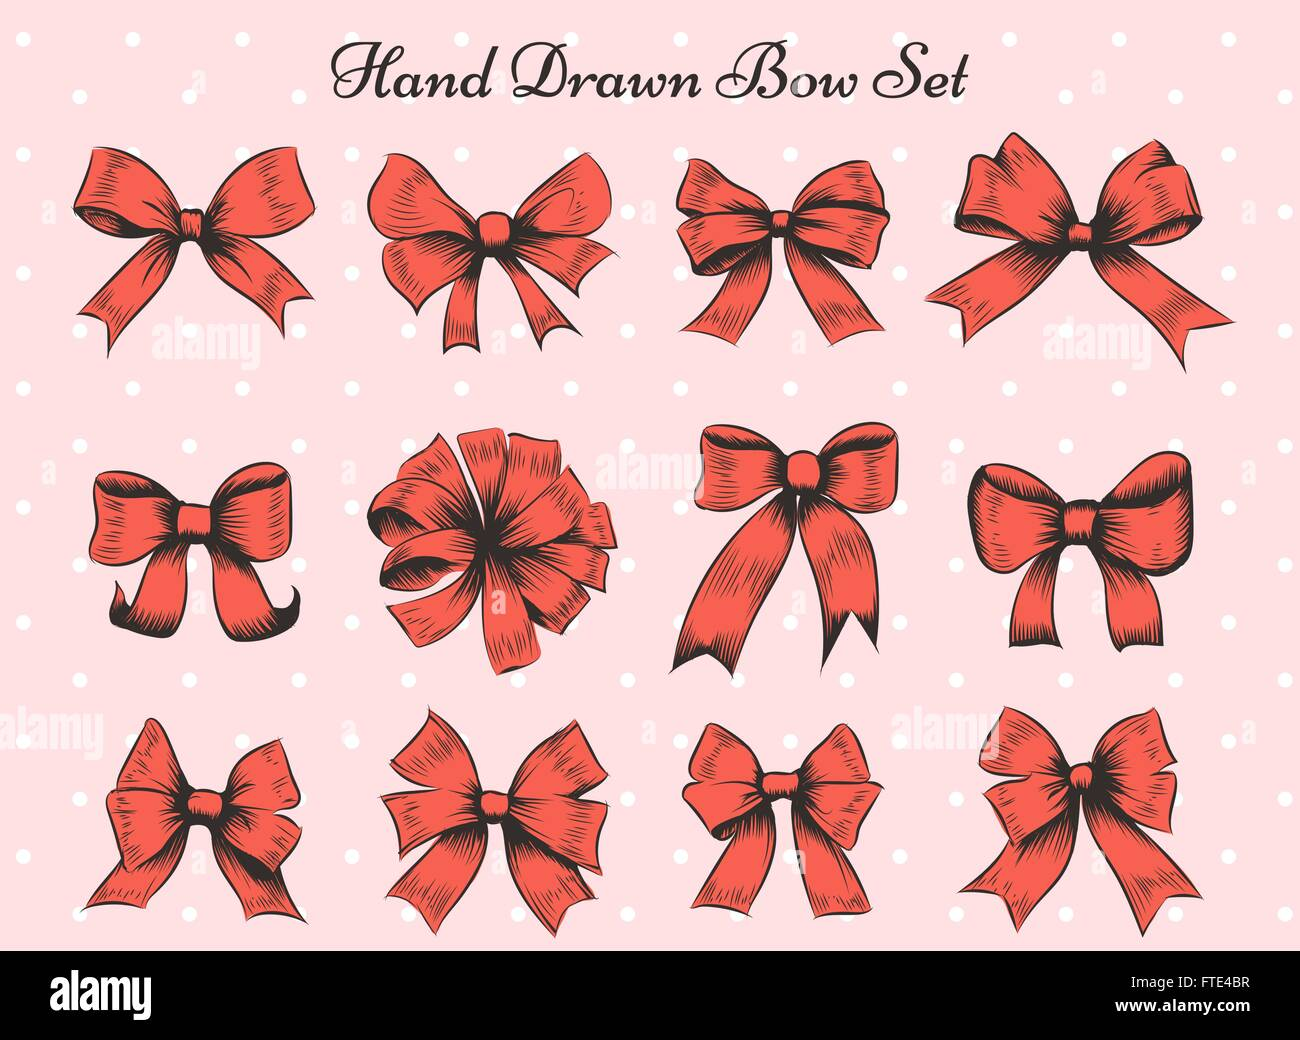 Set of twelve bows. Hand drawn red bows on polka dot background - Stock Vector